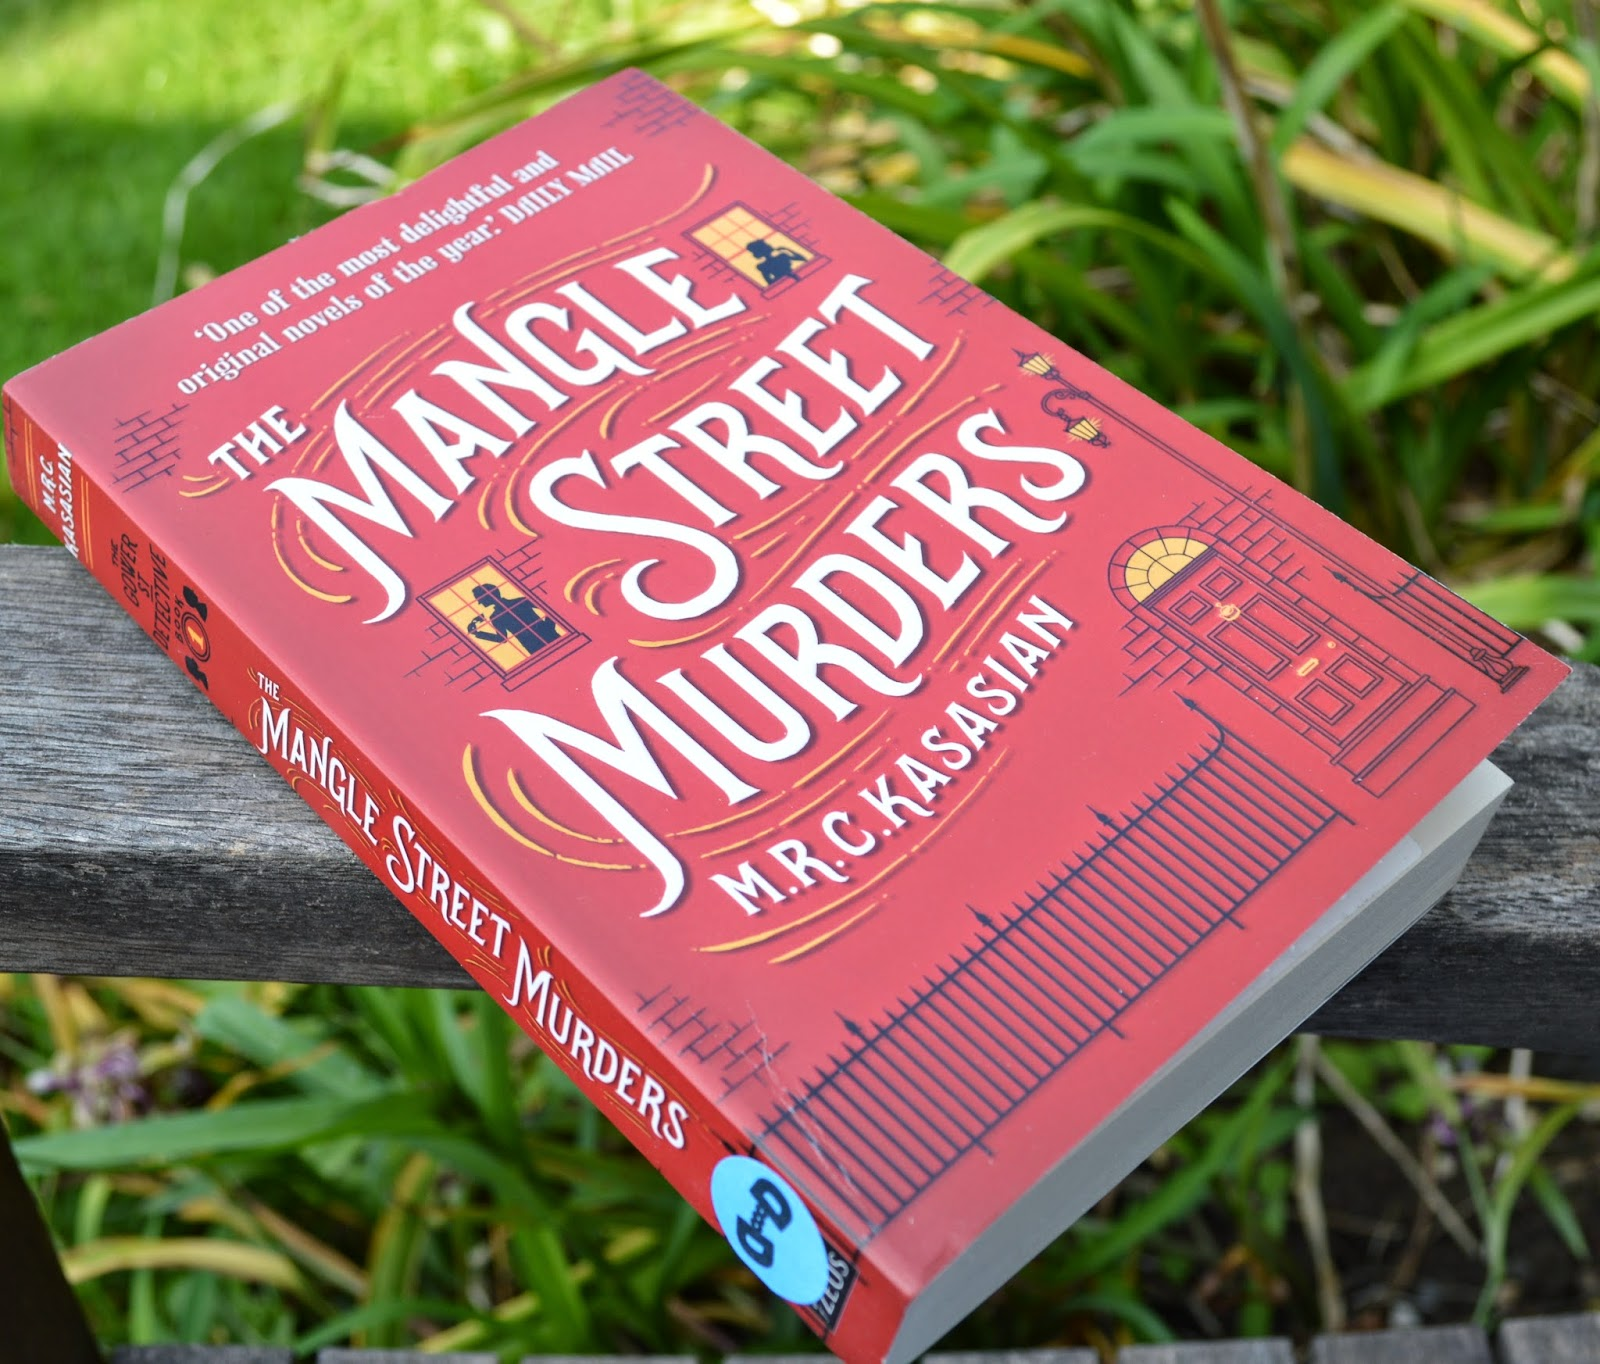 M.R.C Kasasian, The Mangle Street Murders, historical detective, Victorian London, Sherlock Homes, pastiche, March Middleton, Sidney Grice, William Ashby, Grace Dillinger, grisly, penny dreadful